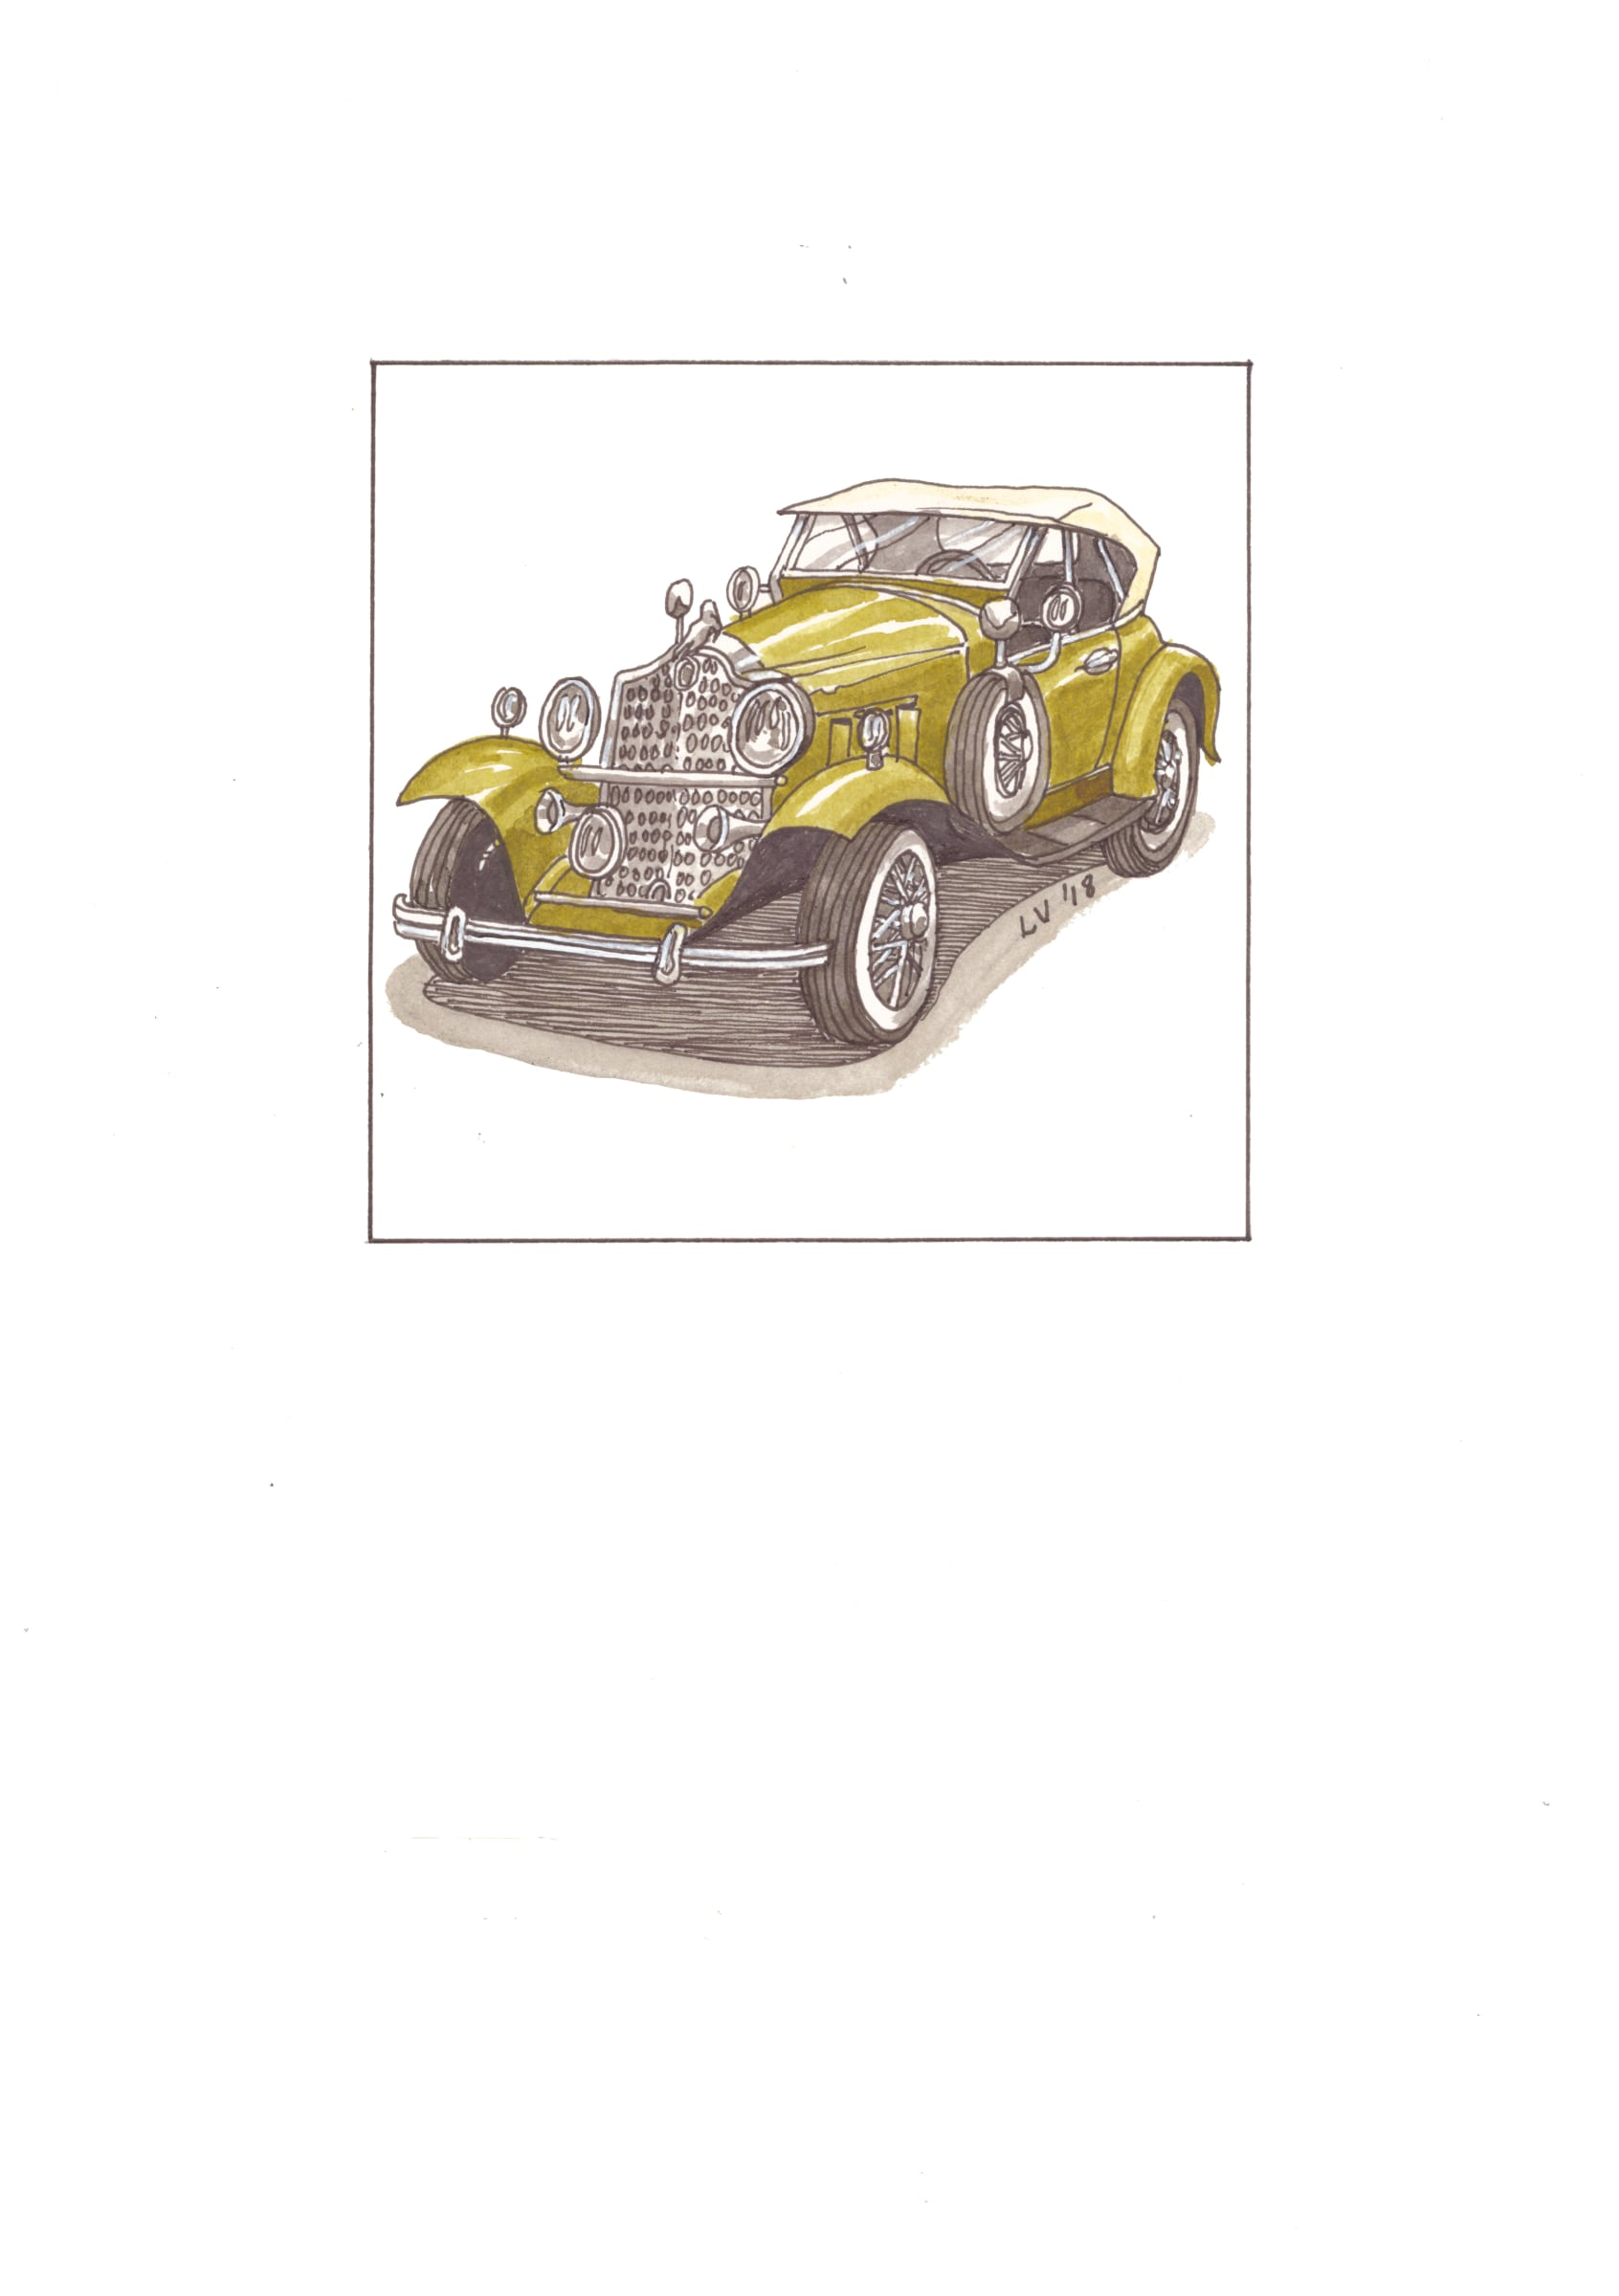 <span class=&#34;link fancybox-details-link&#34;><a href=&#34;/artists/71-leonora-venter/works/2251-leonora-venter-1930-s-packard-roadster-2018/&#34;>View Detail Page</a></span><div class=&#34;artist&#34;><strong>Leonora Venter</strong></div> <div class=&#34;title&#34;><em>1930's Packard Roadster</em>, 2018</div> <div class=&#34;medium&#34;>Coloured Ink On Paper</div> <div class=&#34;dimensions&#34;>14.5cm x 10.5cm</div><div class=&#34;price&#34;>R600.00</div>